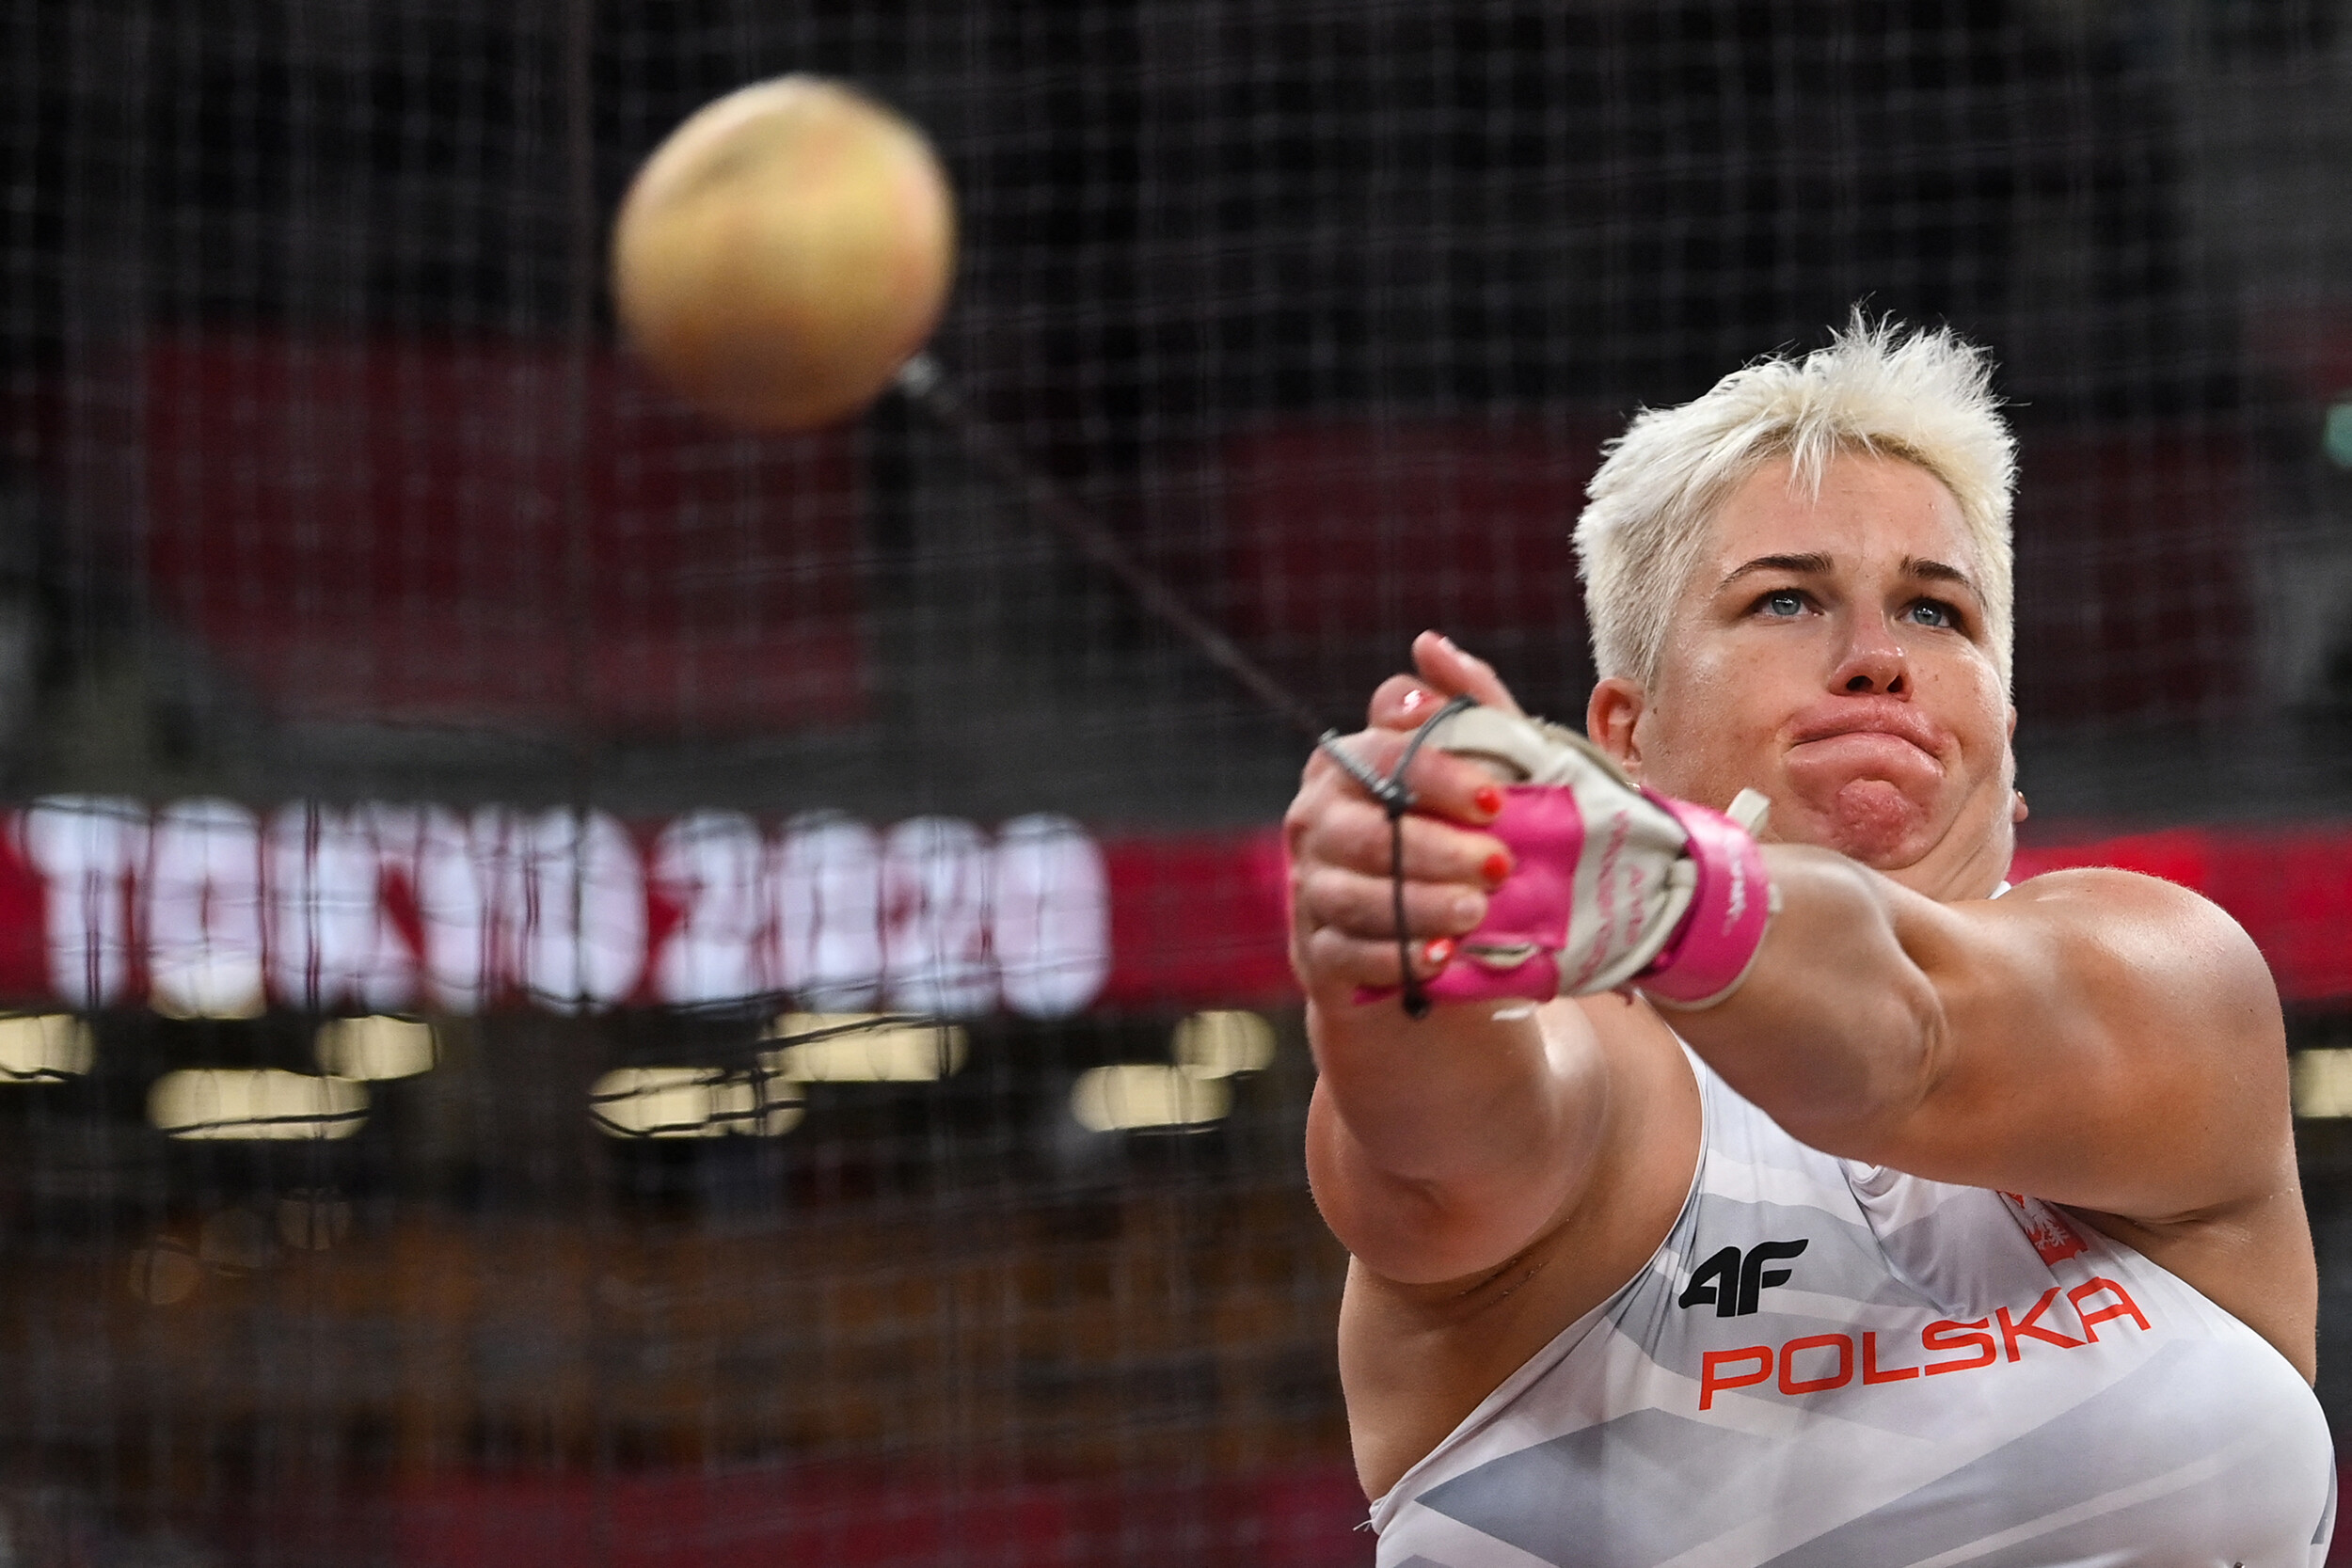 <i>Andrej Isakovic/AFP/Getty Images</i><br/>Poland's Anita Wlodarczyk competes in the women's hammer throw final during the Tokyo 2020 Olympic Games on August 3.